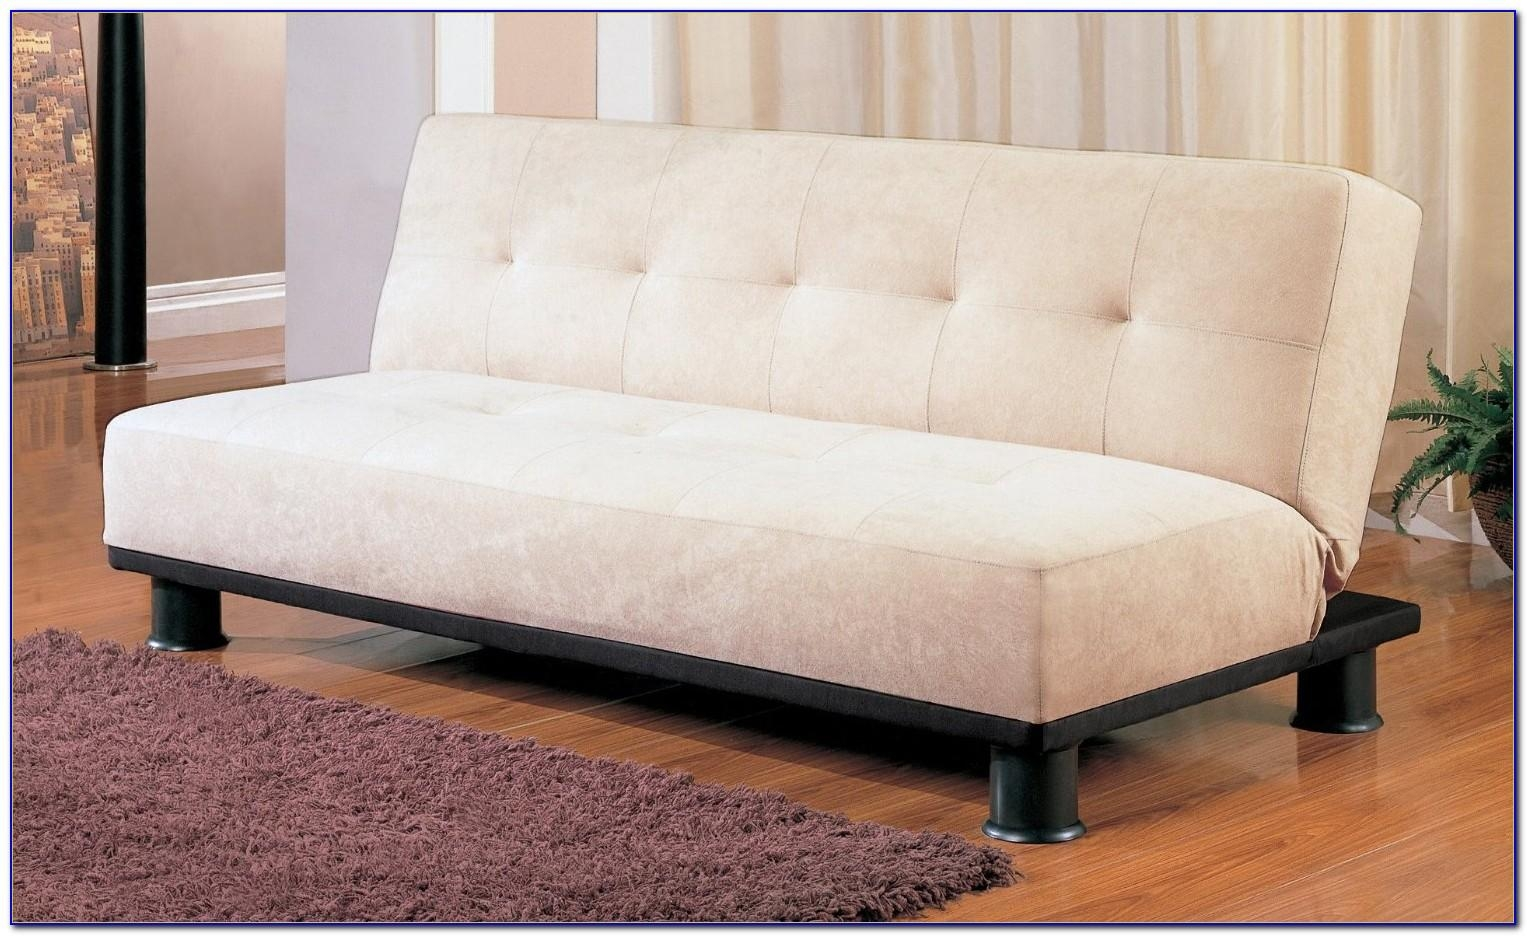 beds and sofas sectional sofa recliners 20 best ideas castro convertible